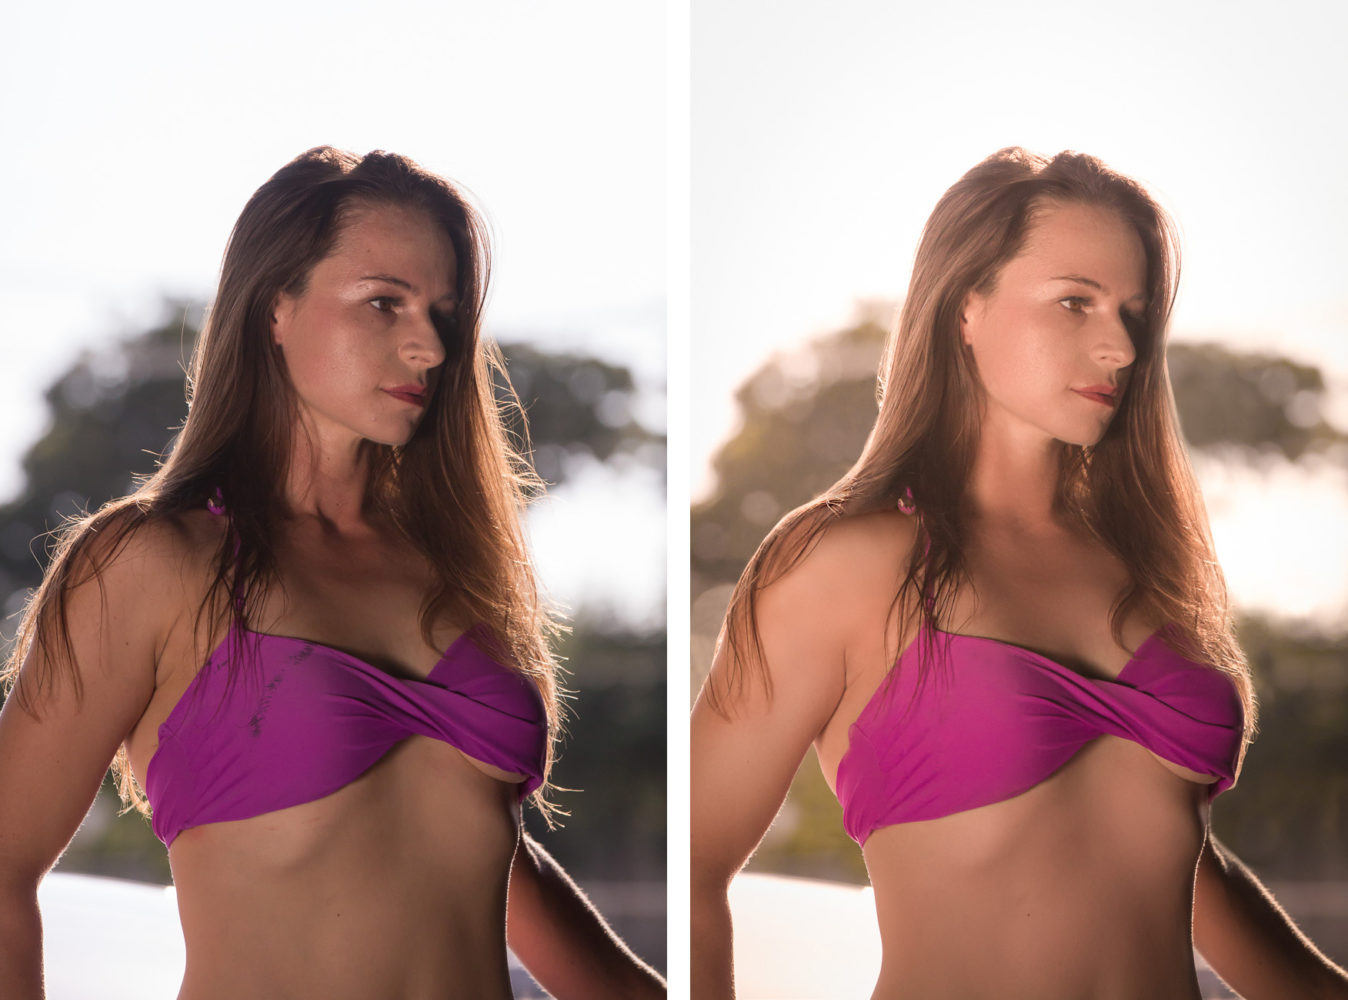 Photo by Dennis Scales - Color Correction and Retouching